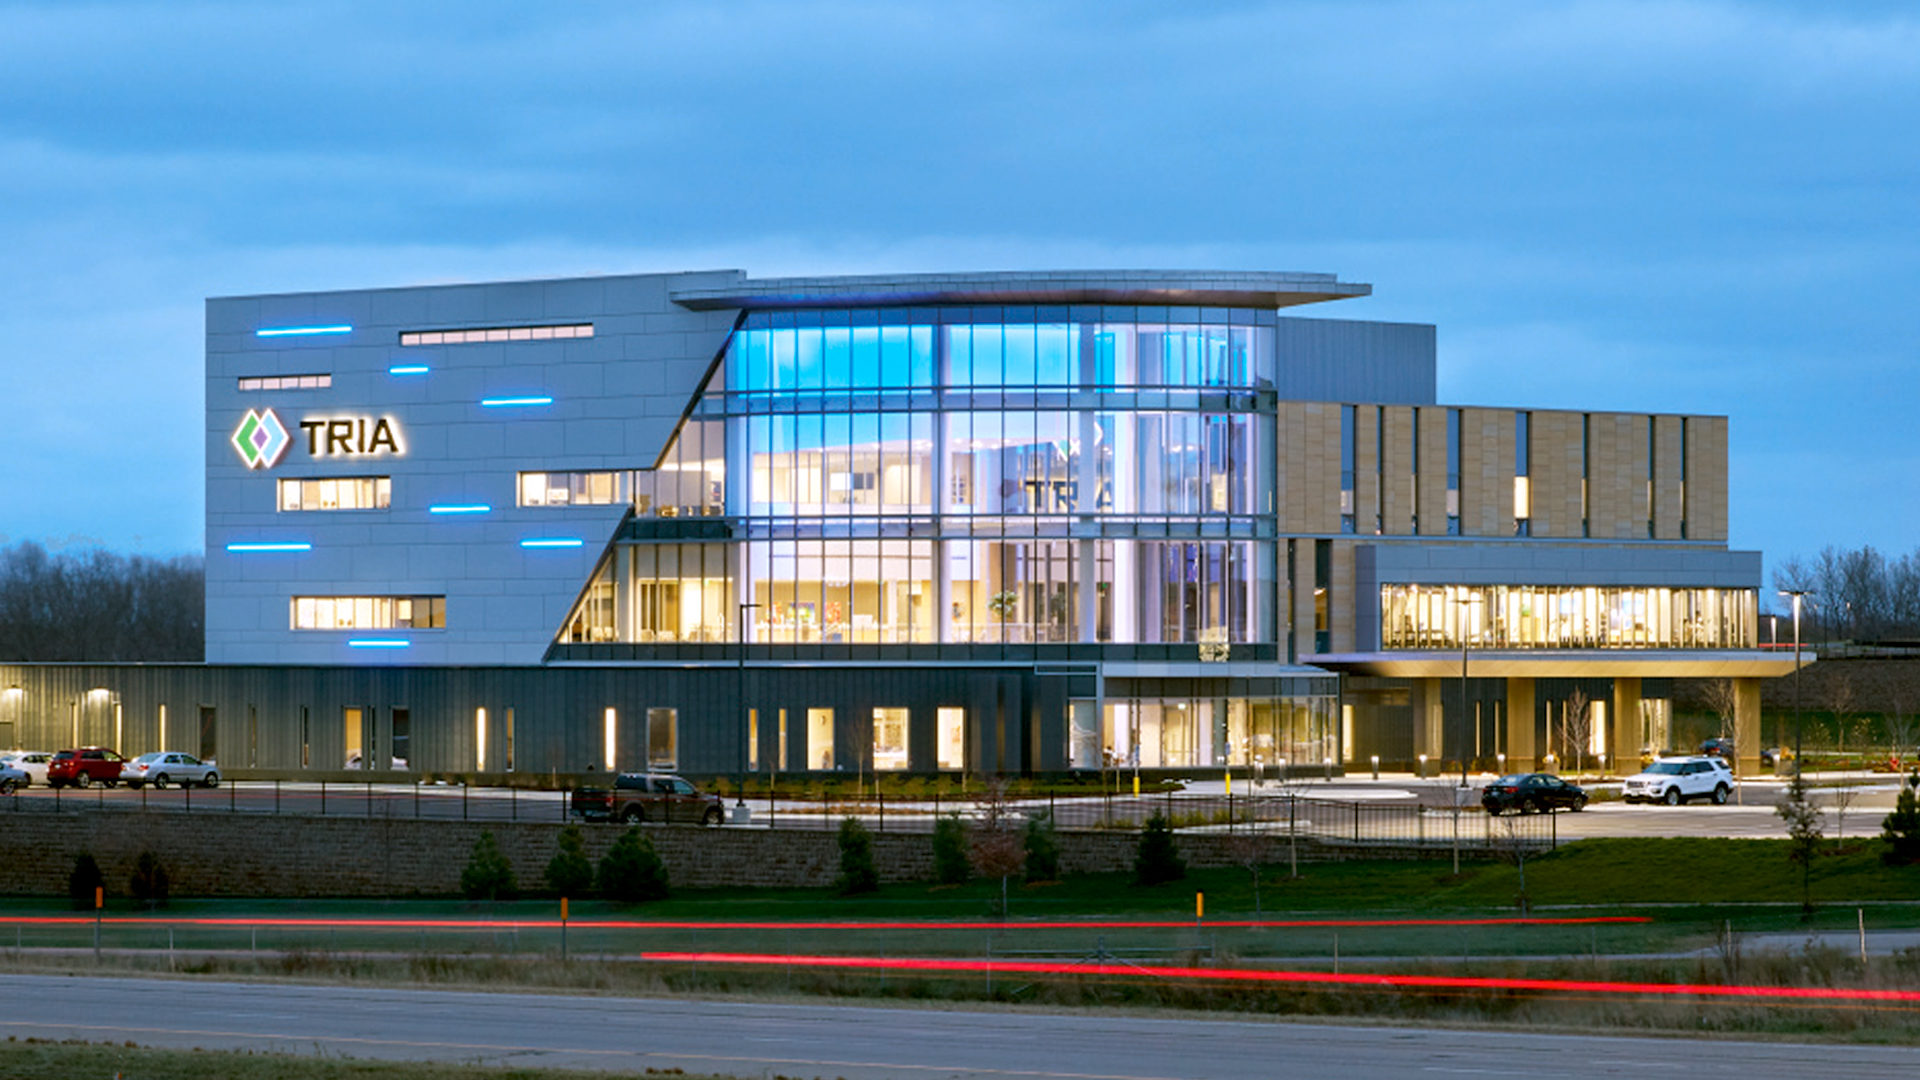 TRIA Orthopedic Center CityPlace Woodbury MN Healthcare Exterior Night Shot